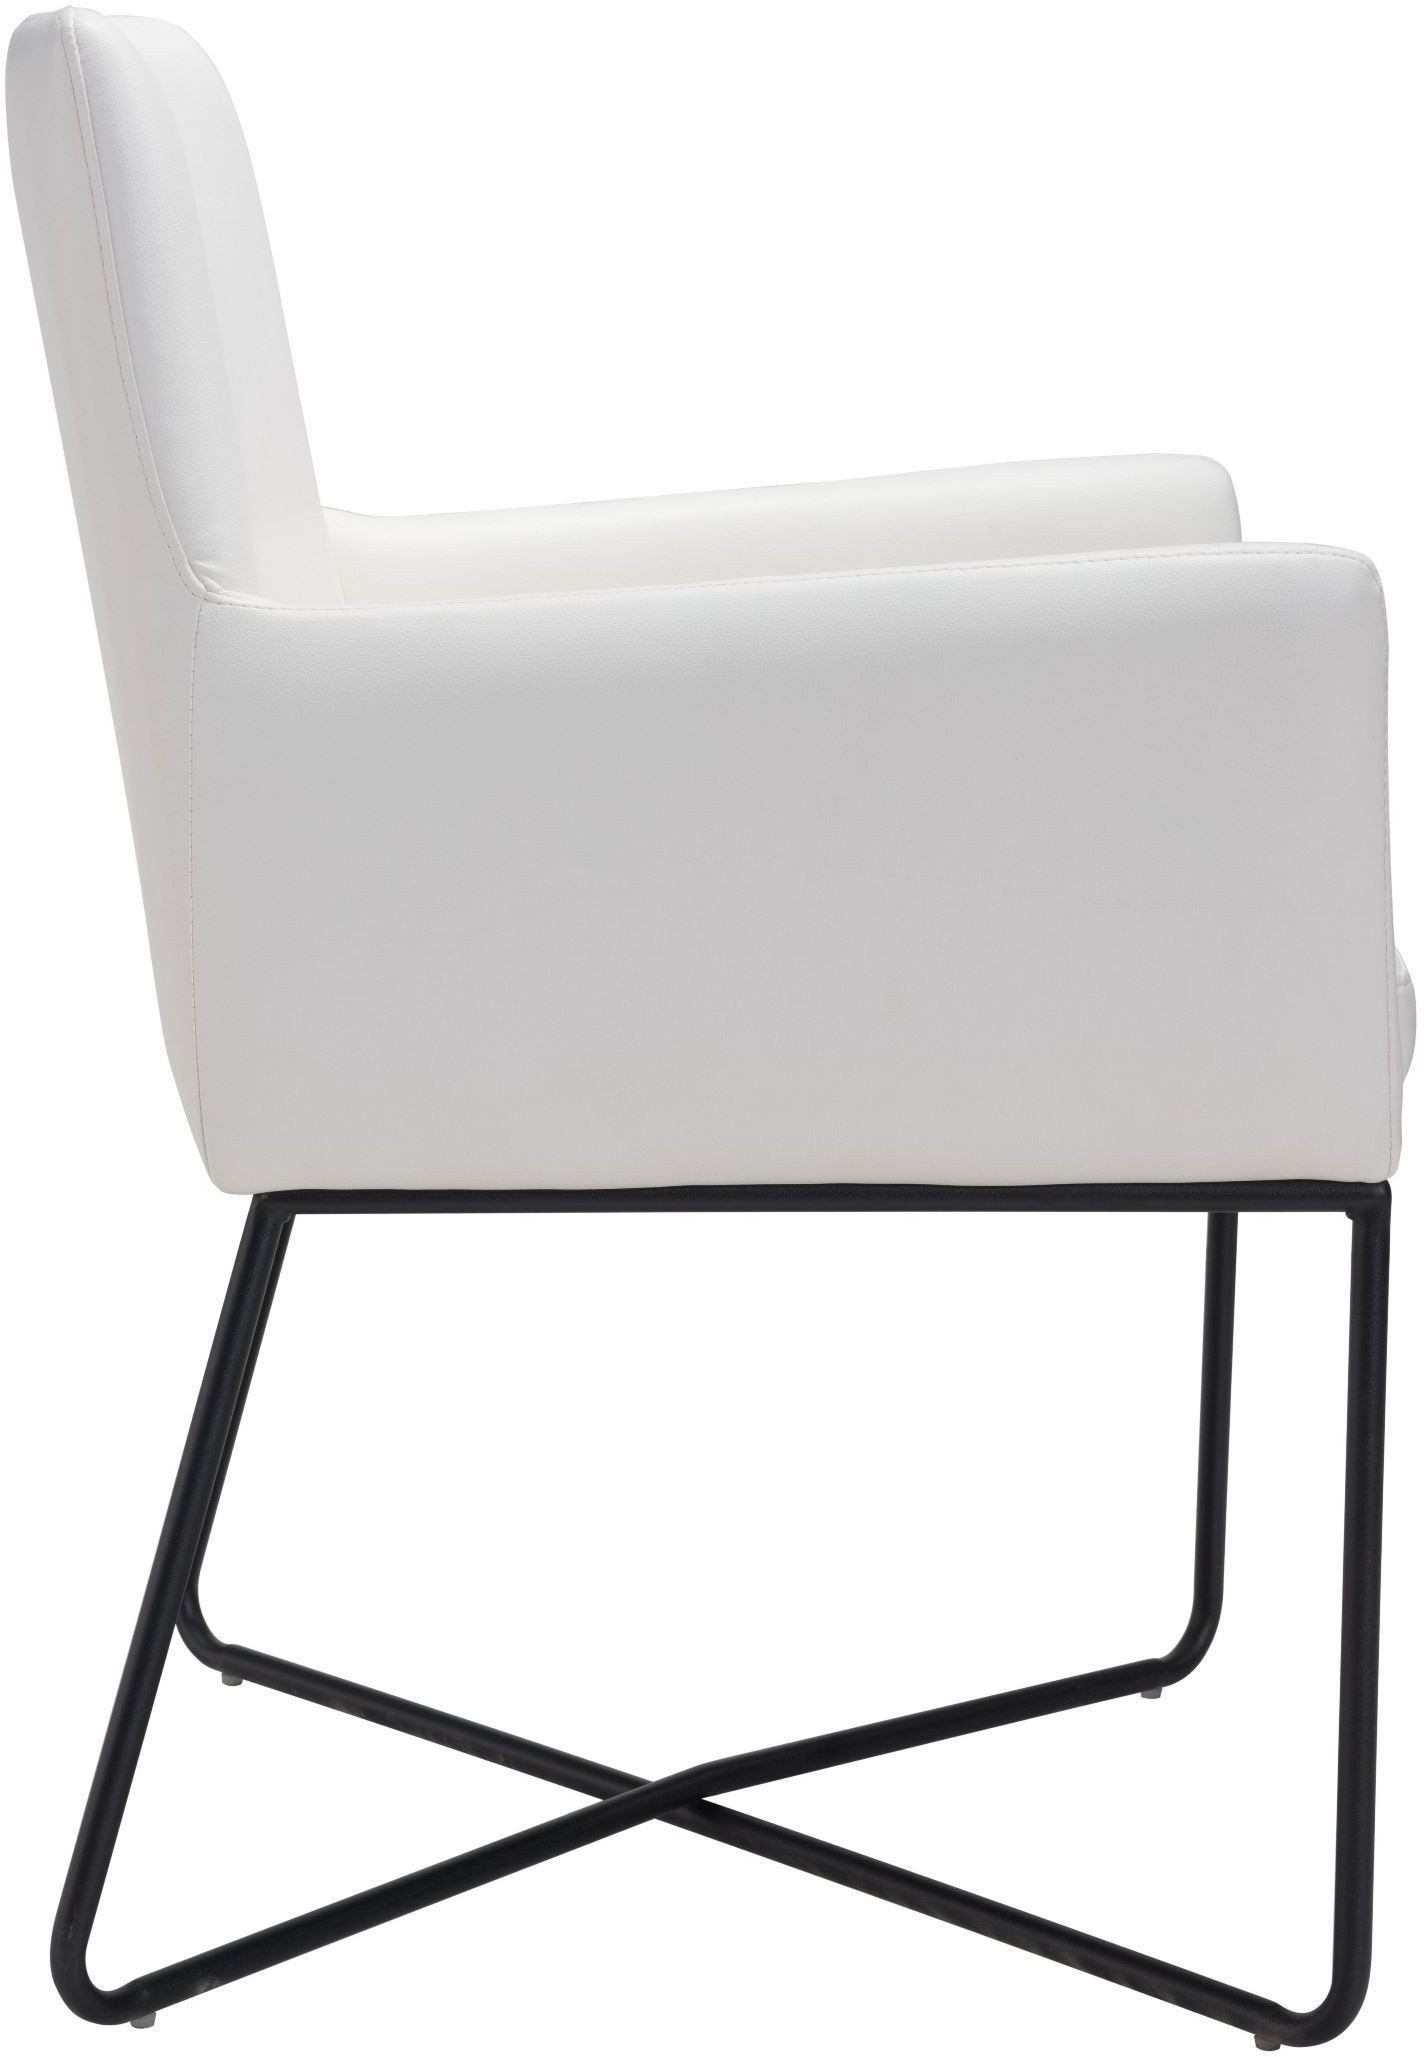 ZUO Modern Axel Lounge Chair White Dining Chairs Stools